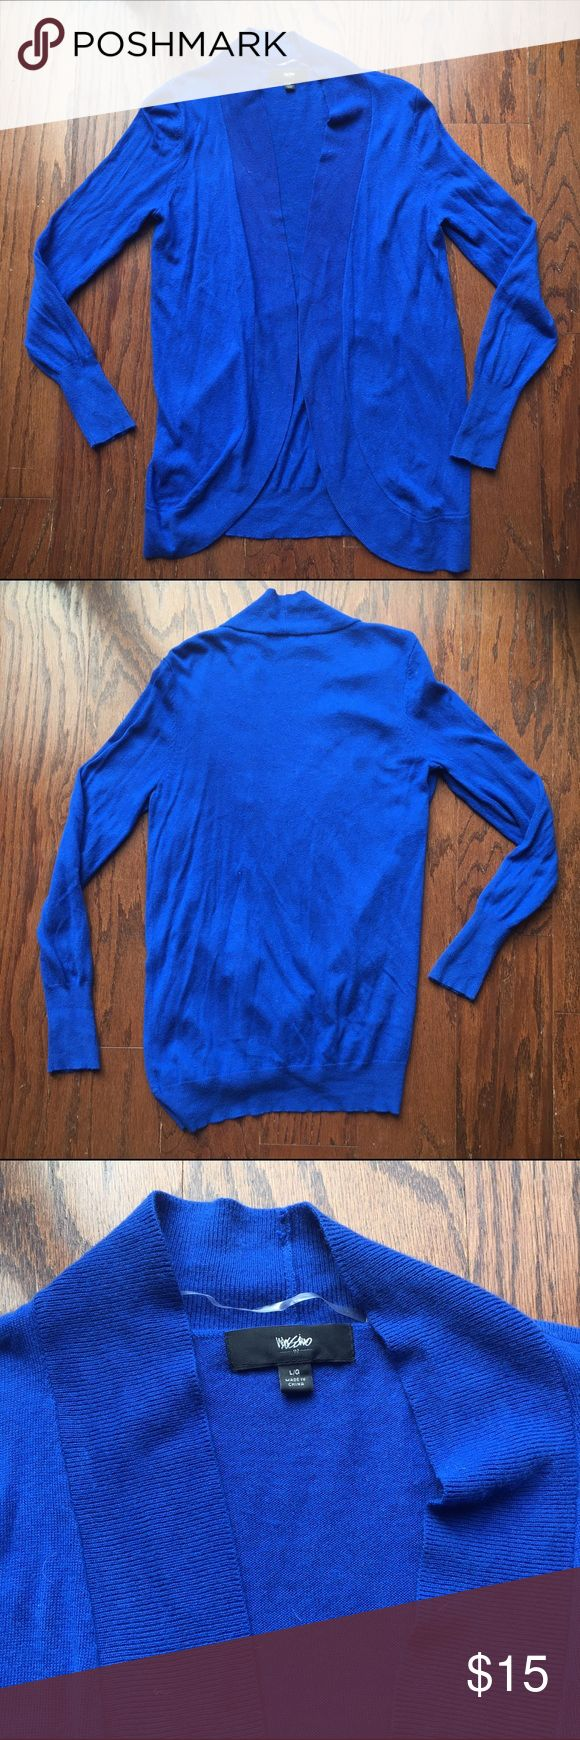 Mossimo Cardigan - Royal Blue Super comfy royal blue Mossimo Cardigan. Rarely worn- in great condition. Very flattering color! Goes well with jeans or leggings and boots! Feel free to make an offer!  Mossimo Supply Co. Sweaters Cardigans